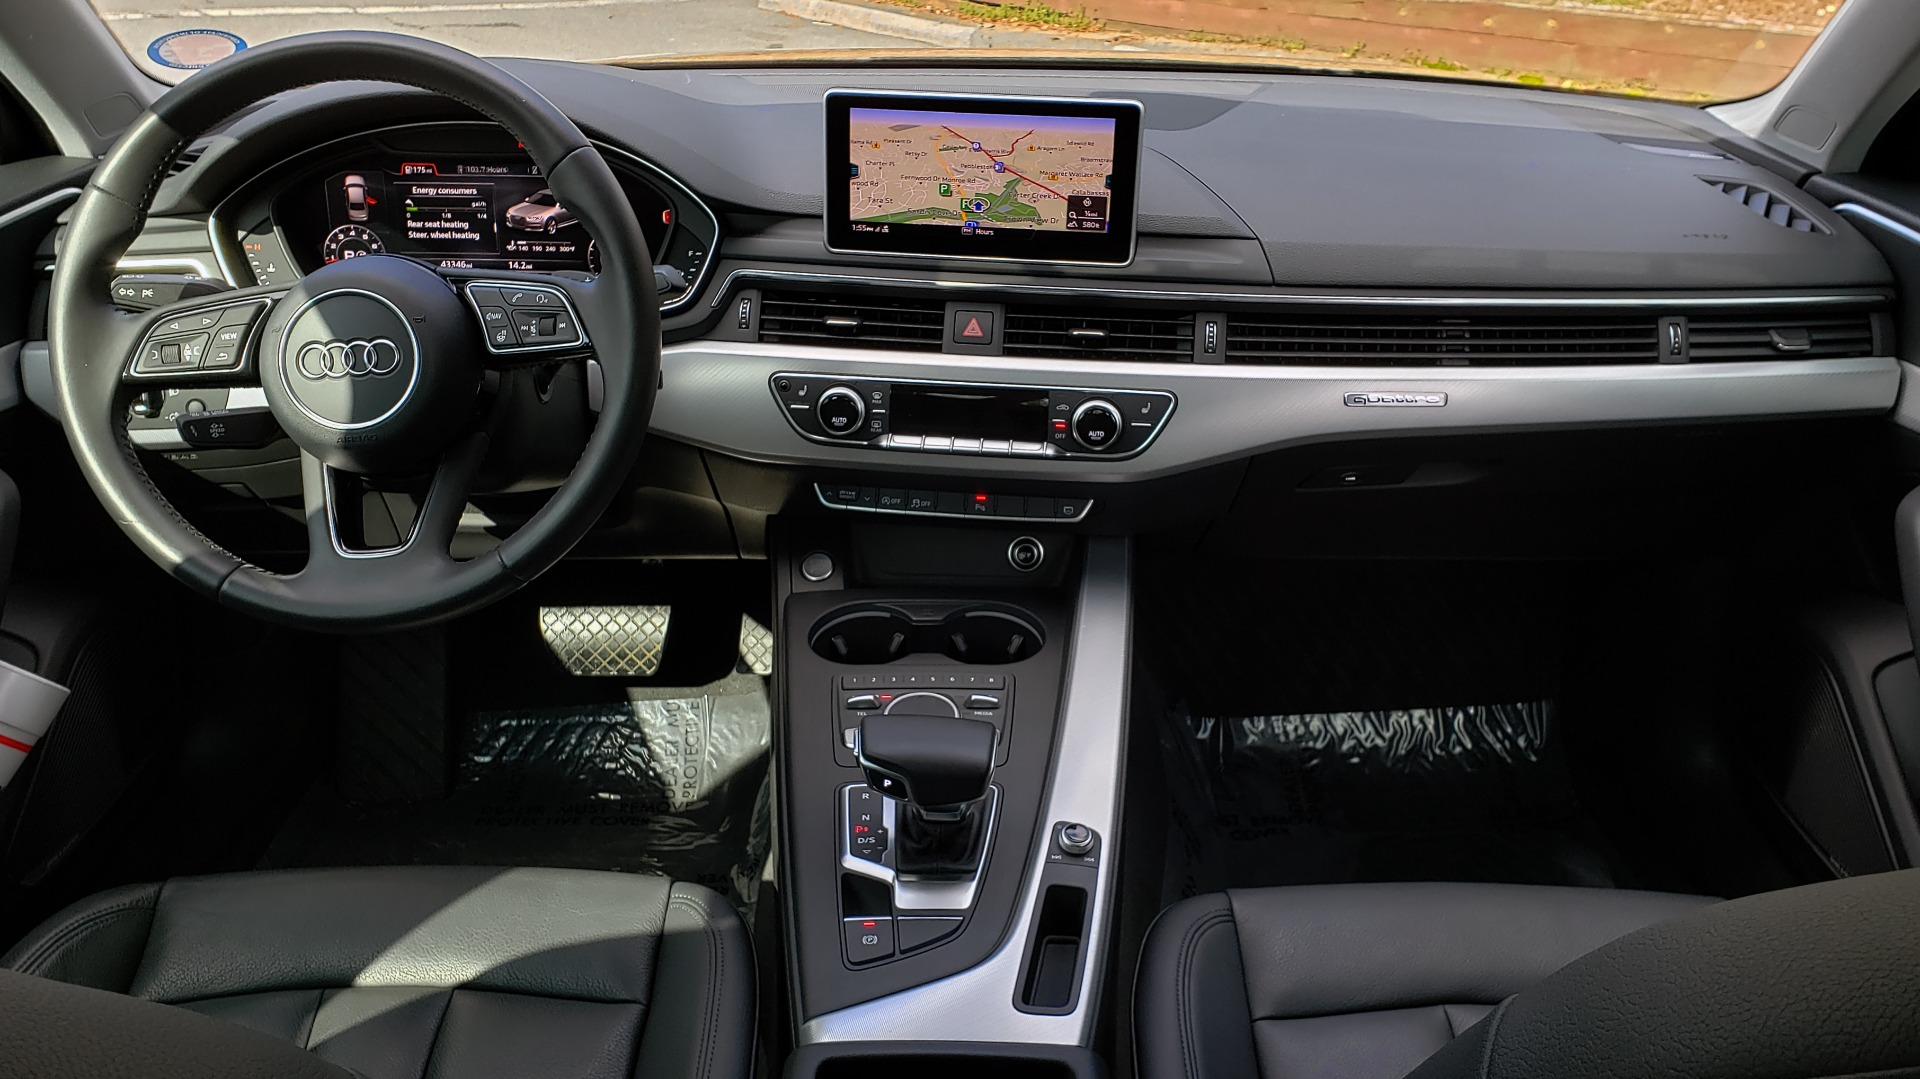 Used 2017 Audi A4 PREMIUM PLUS 2.0T / TECH / NAV / CLD WTHR / SUNROOF / REARVIEW for sale Sold at Formula Imports in Charlotte NC 28227 75